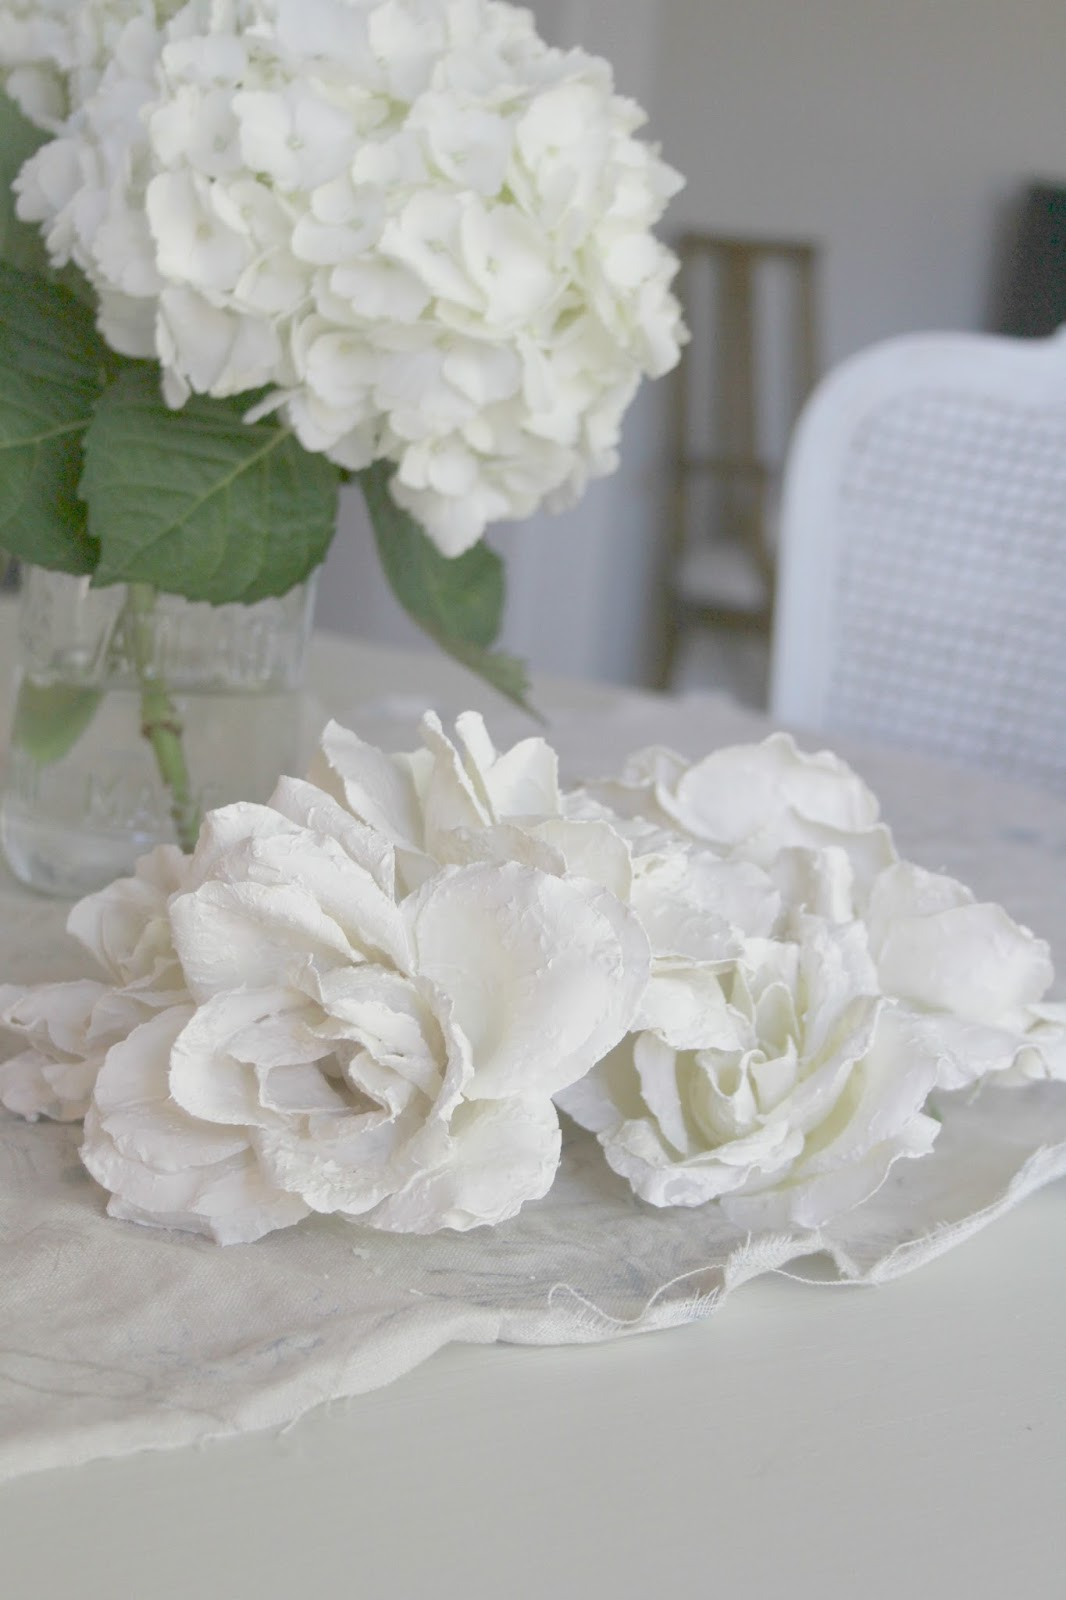 White plaster roses on linen cloth by Hello Lovely Studio